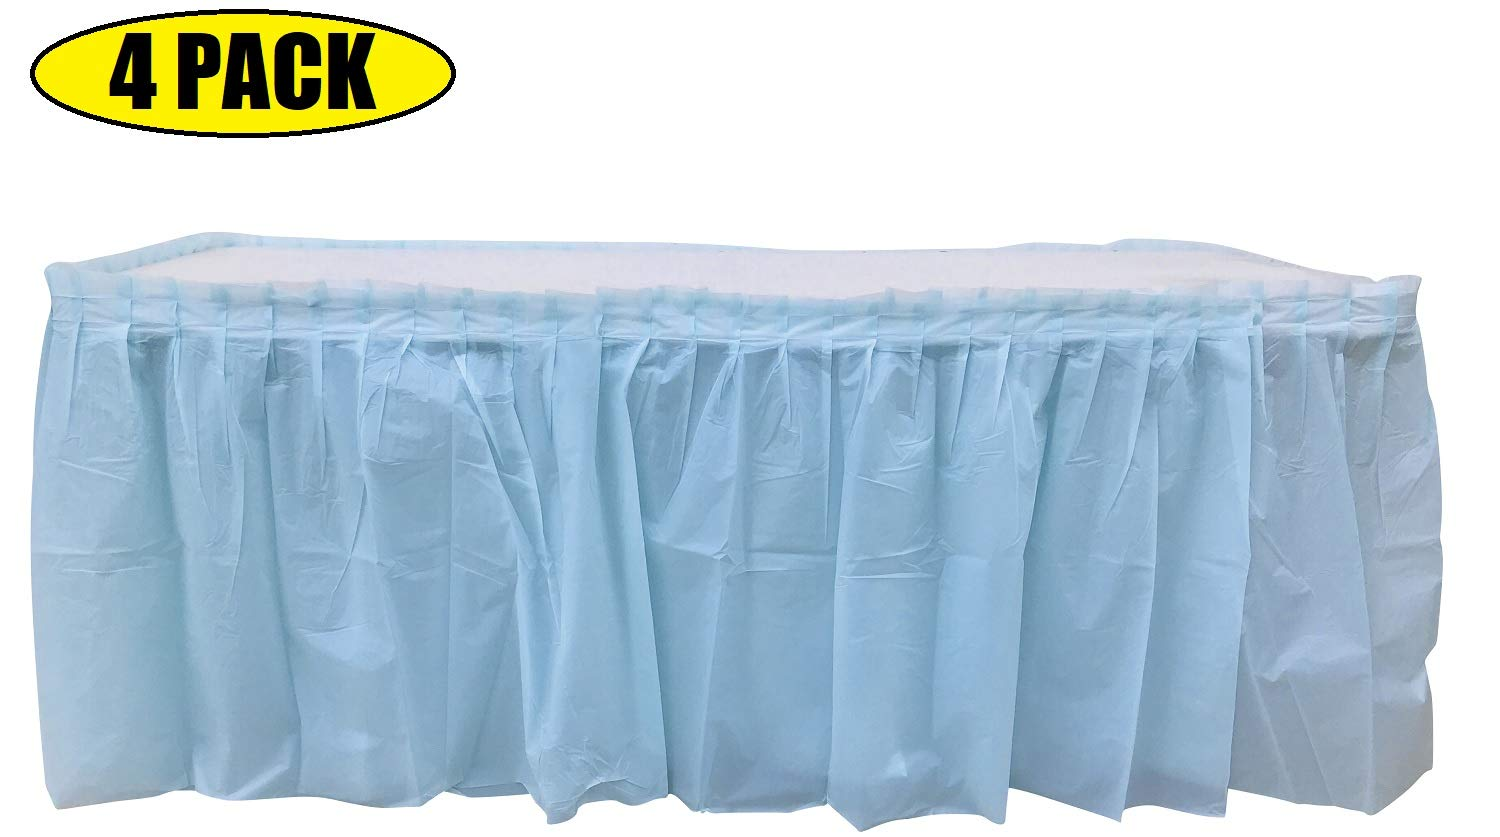 4 Pack Light Blue Table Skirt Carnival, Circus, Birthday, office, party Decorations, Baby Shower, Gender Reveal by Oojami